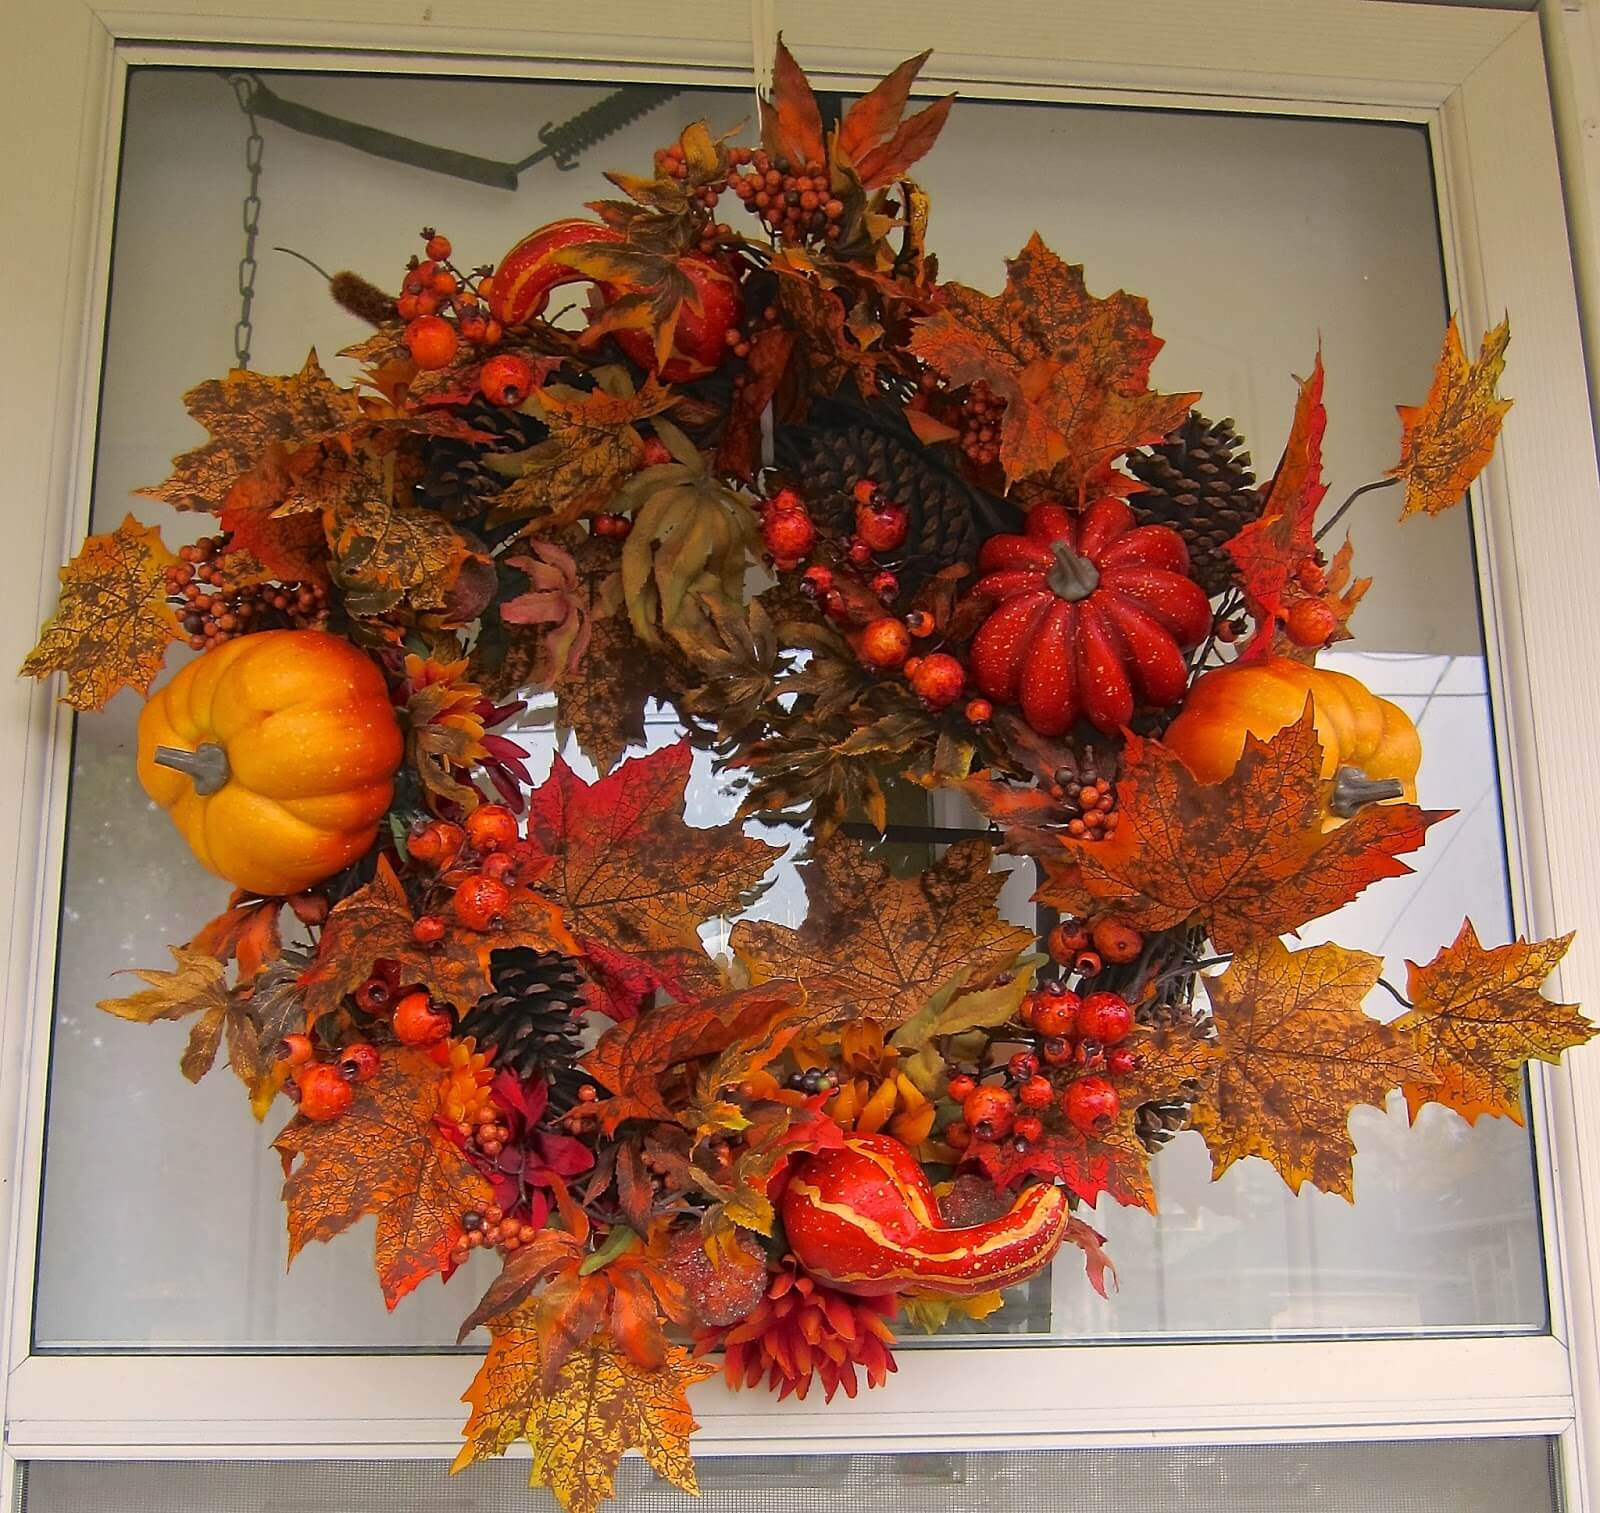 A self made fall wreath for your home's front door